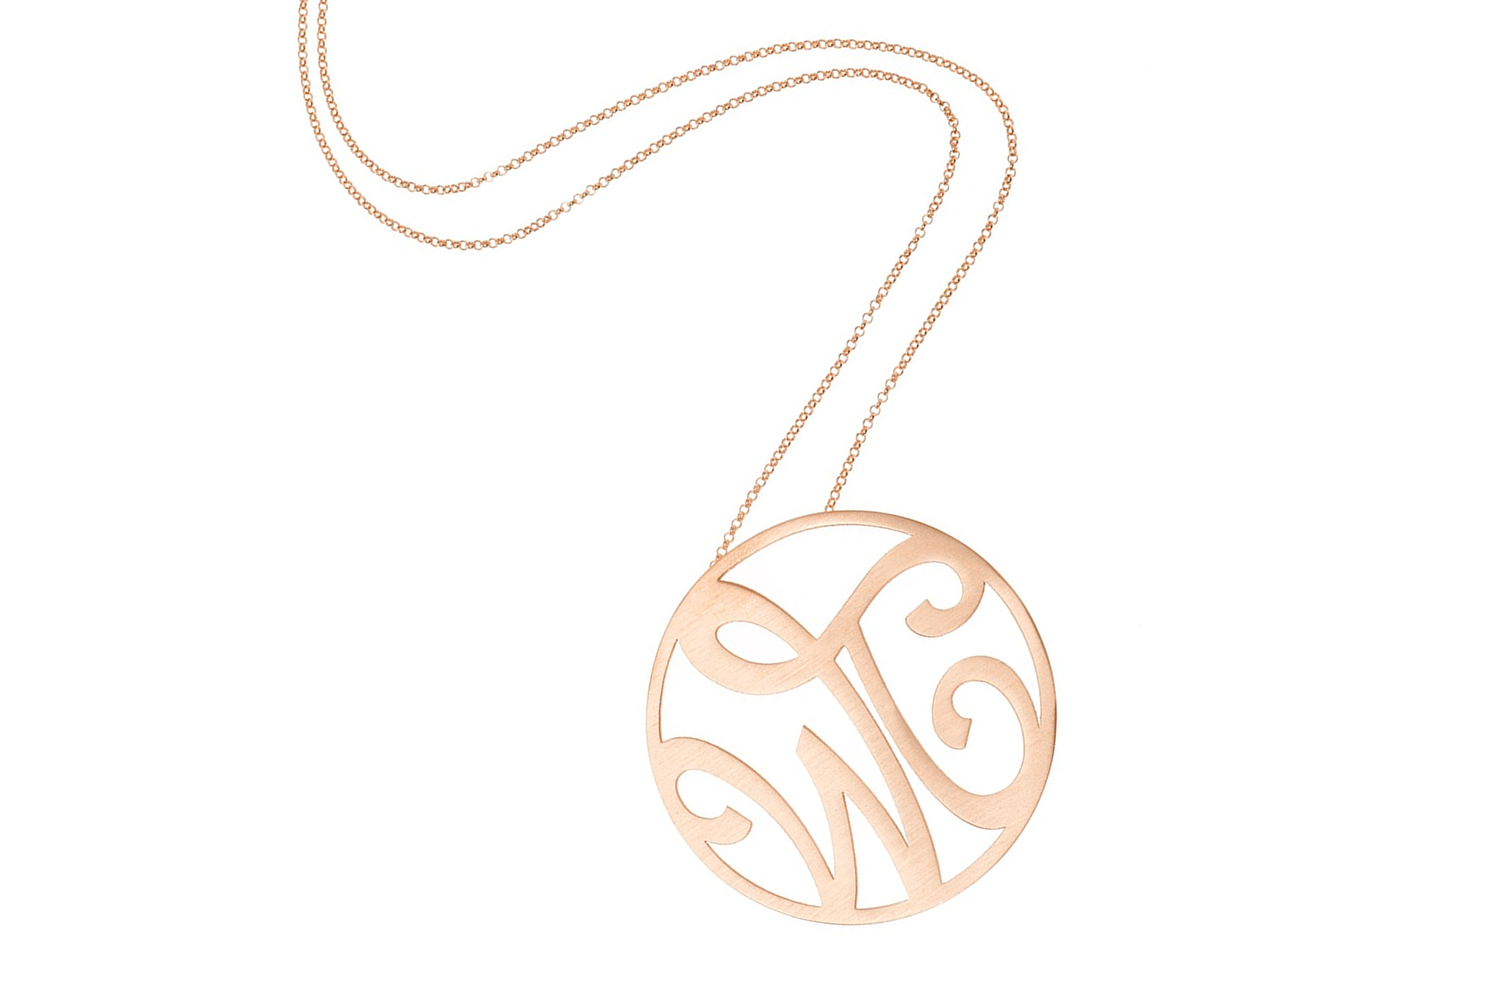 Rose-gold-bridal-necklace-with-monogram.original